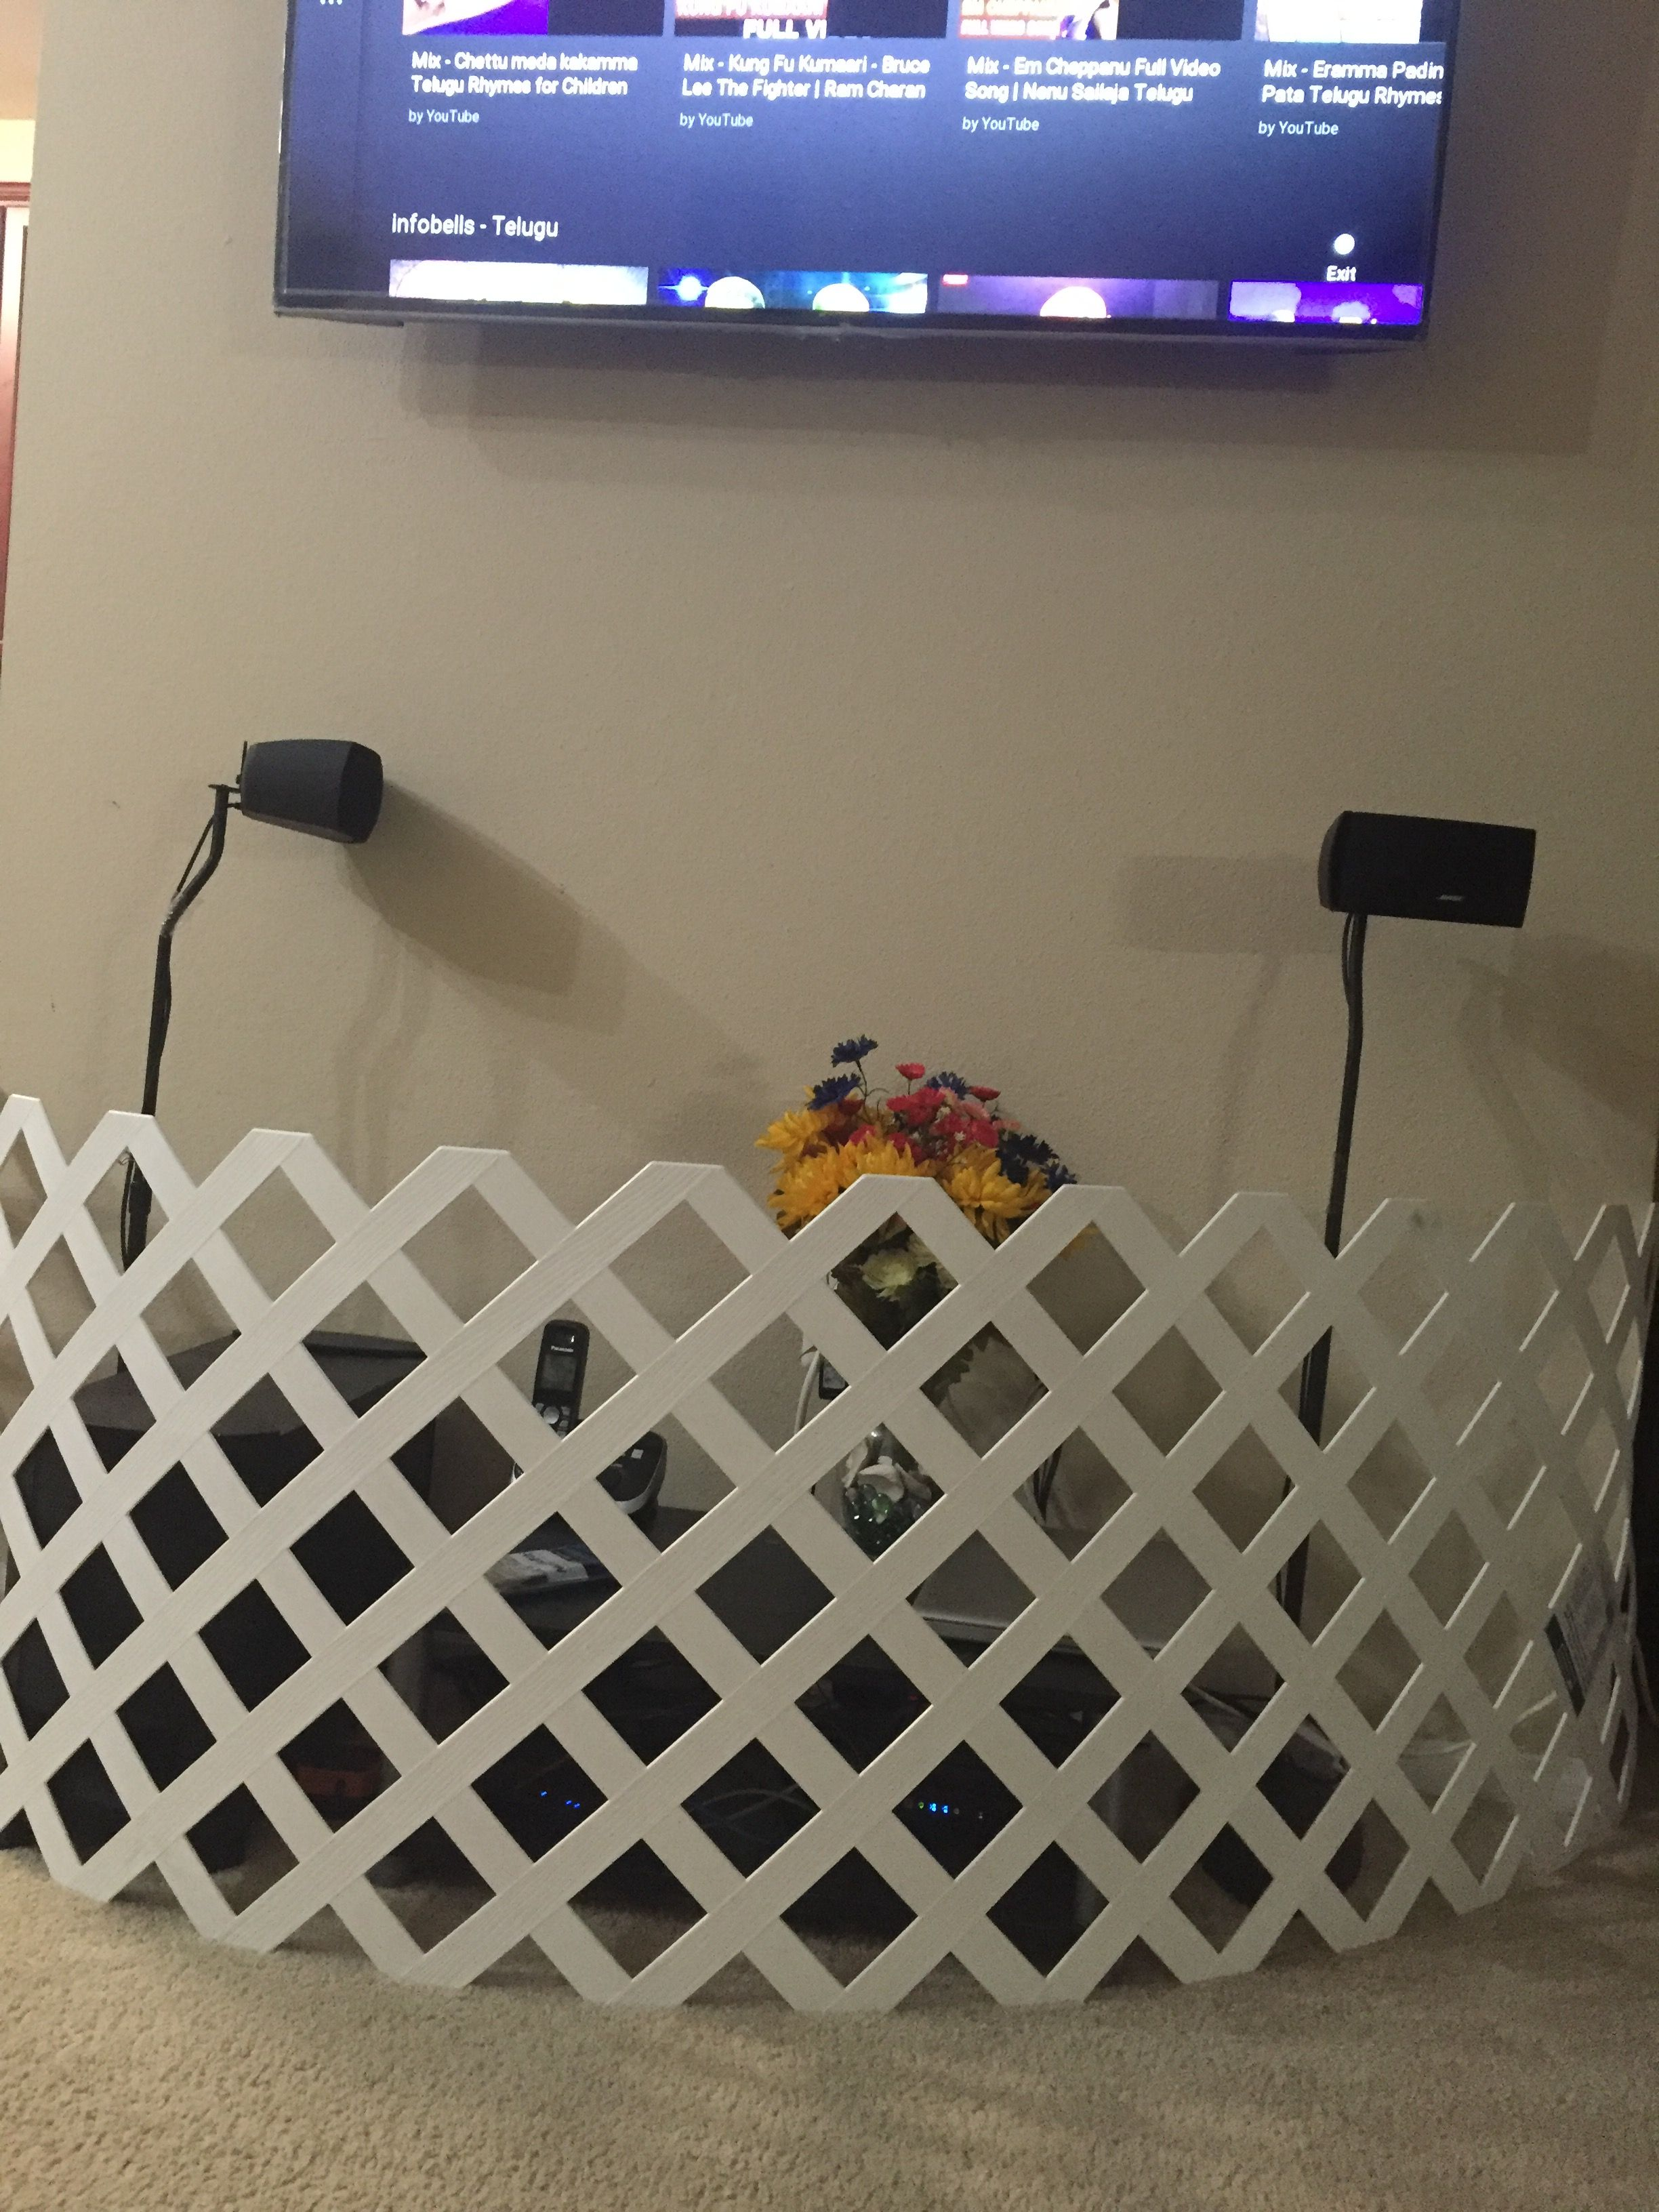 DIY child proofing your TV area .. All you need is a vinyl